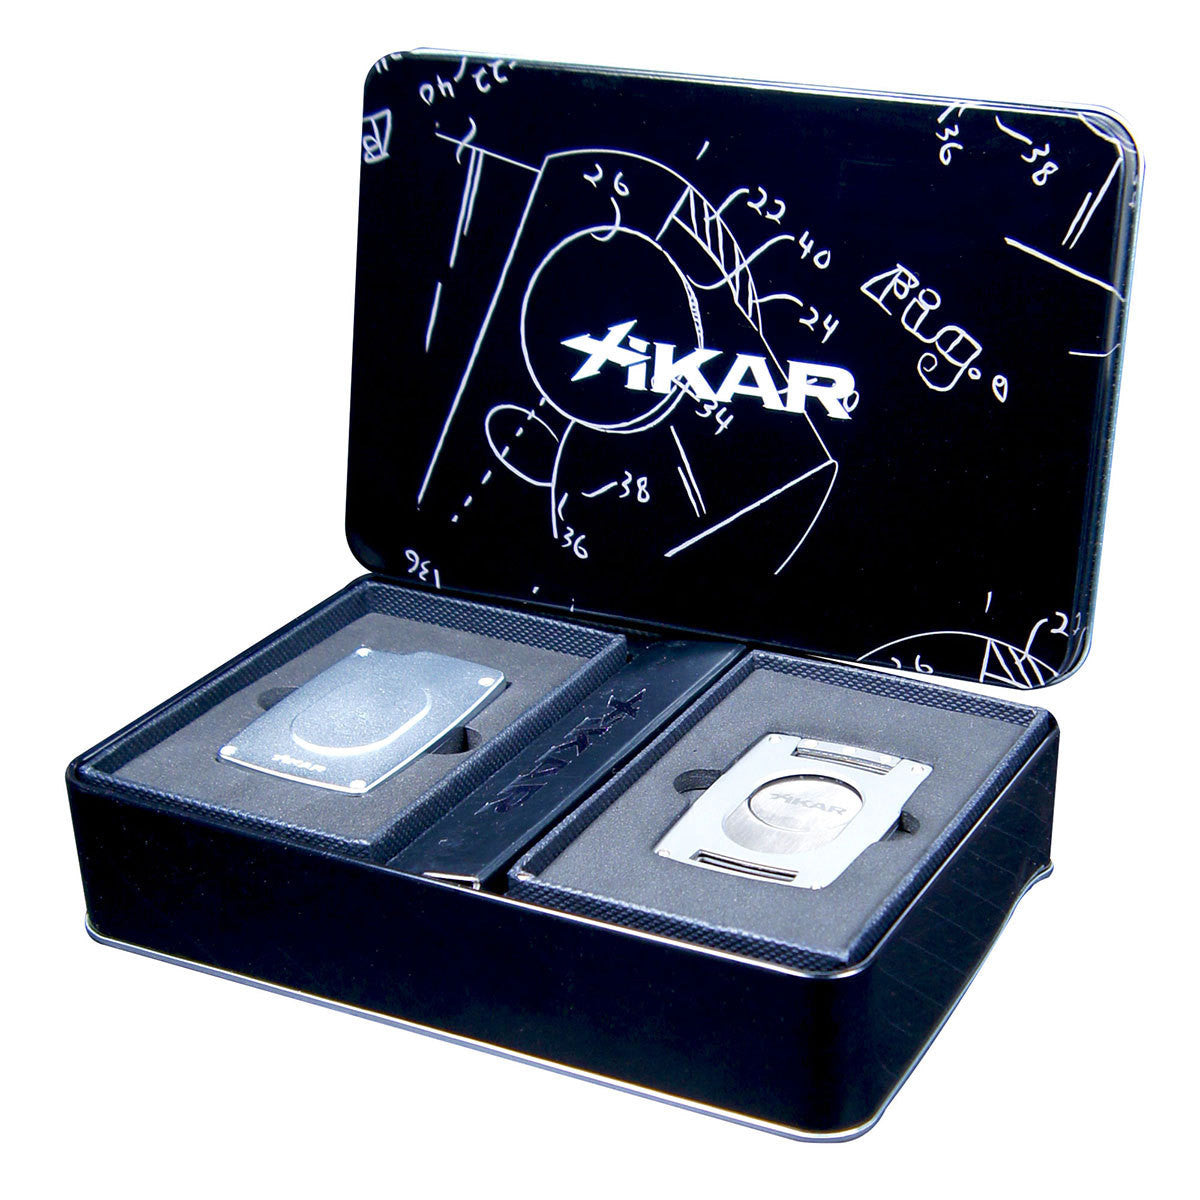 Xikar Ultra Slim Cigar Cutter and Lighter Silver Gift Set - Humidors Wholesaler